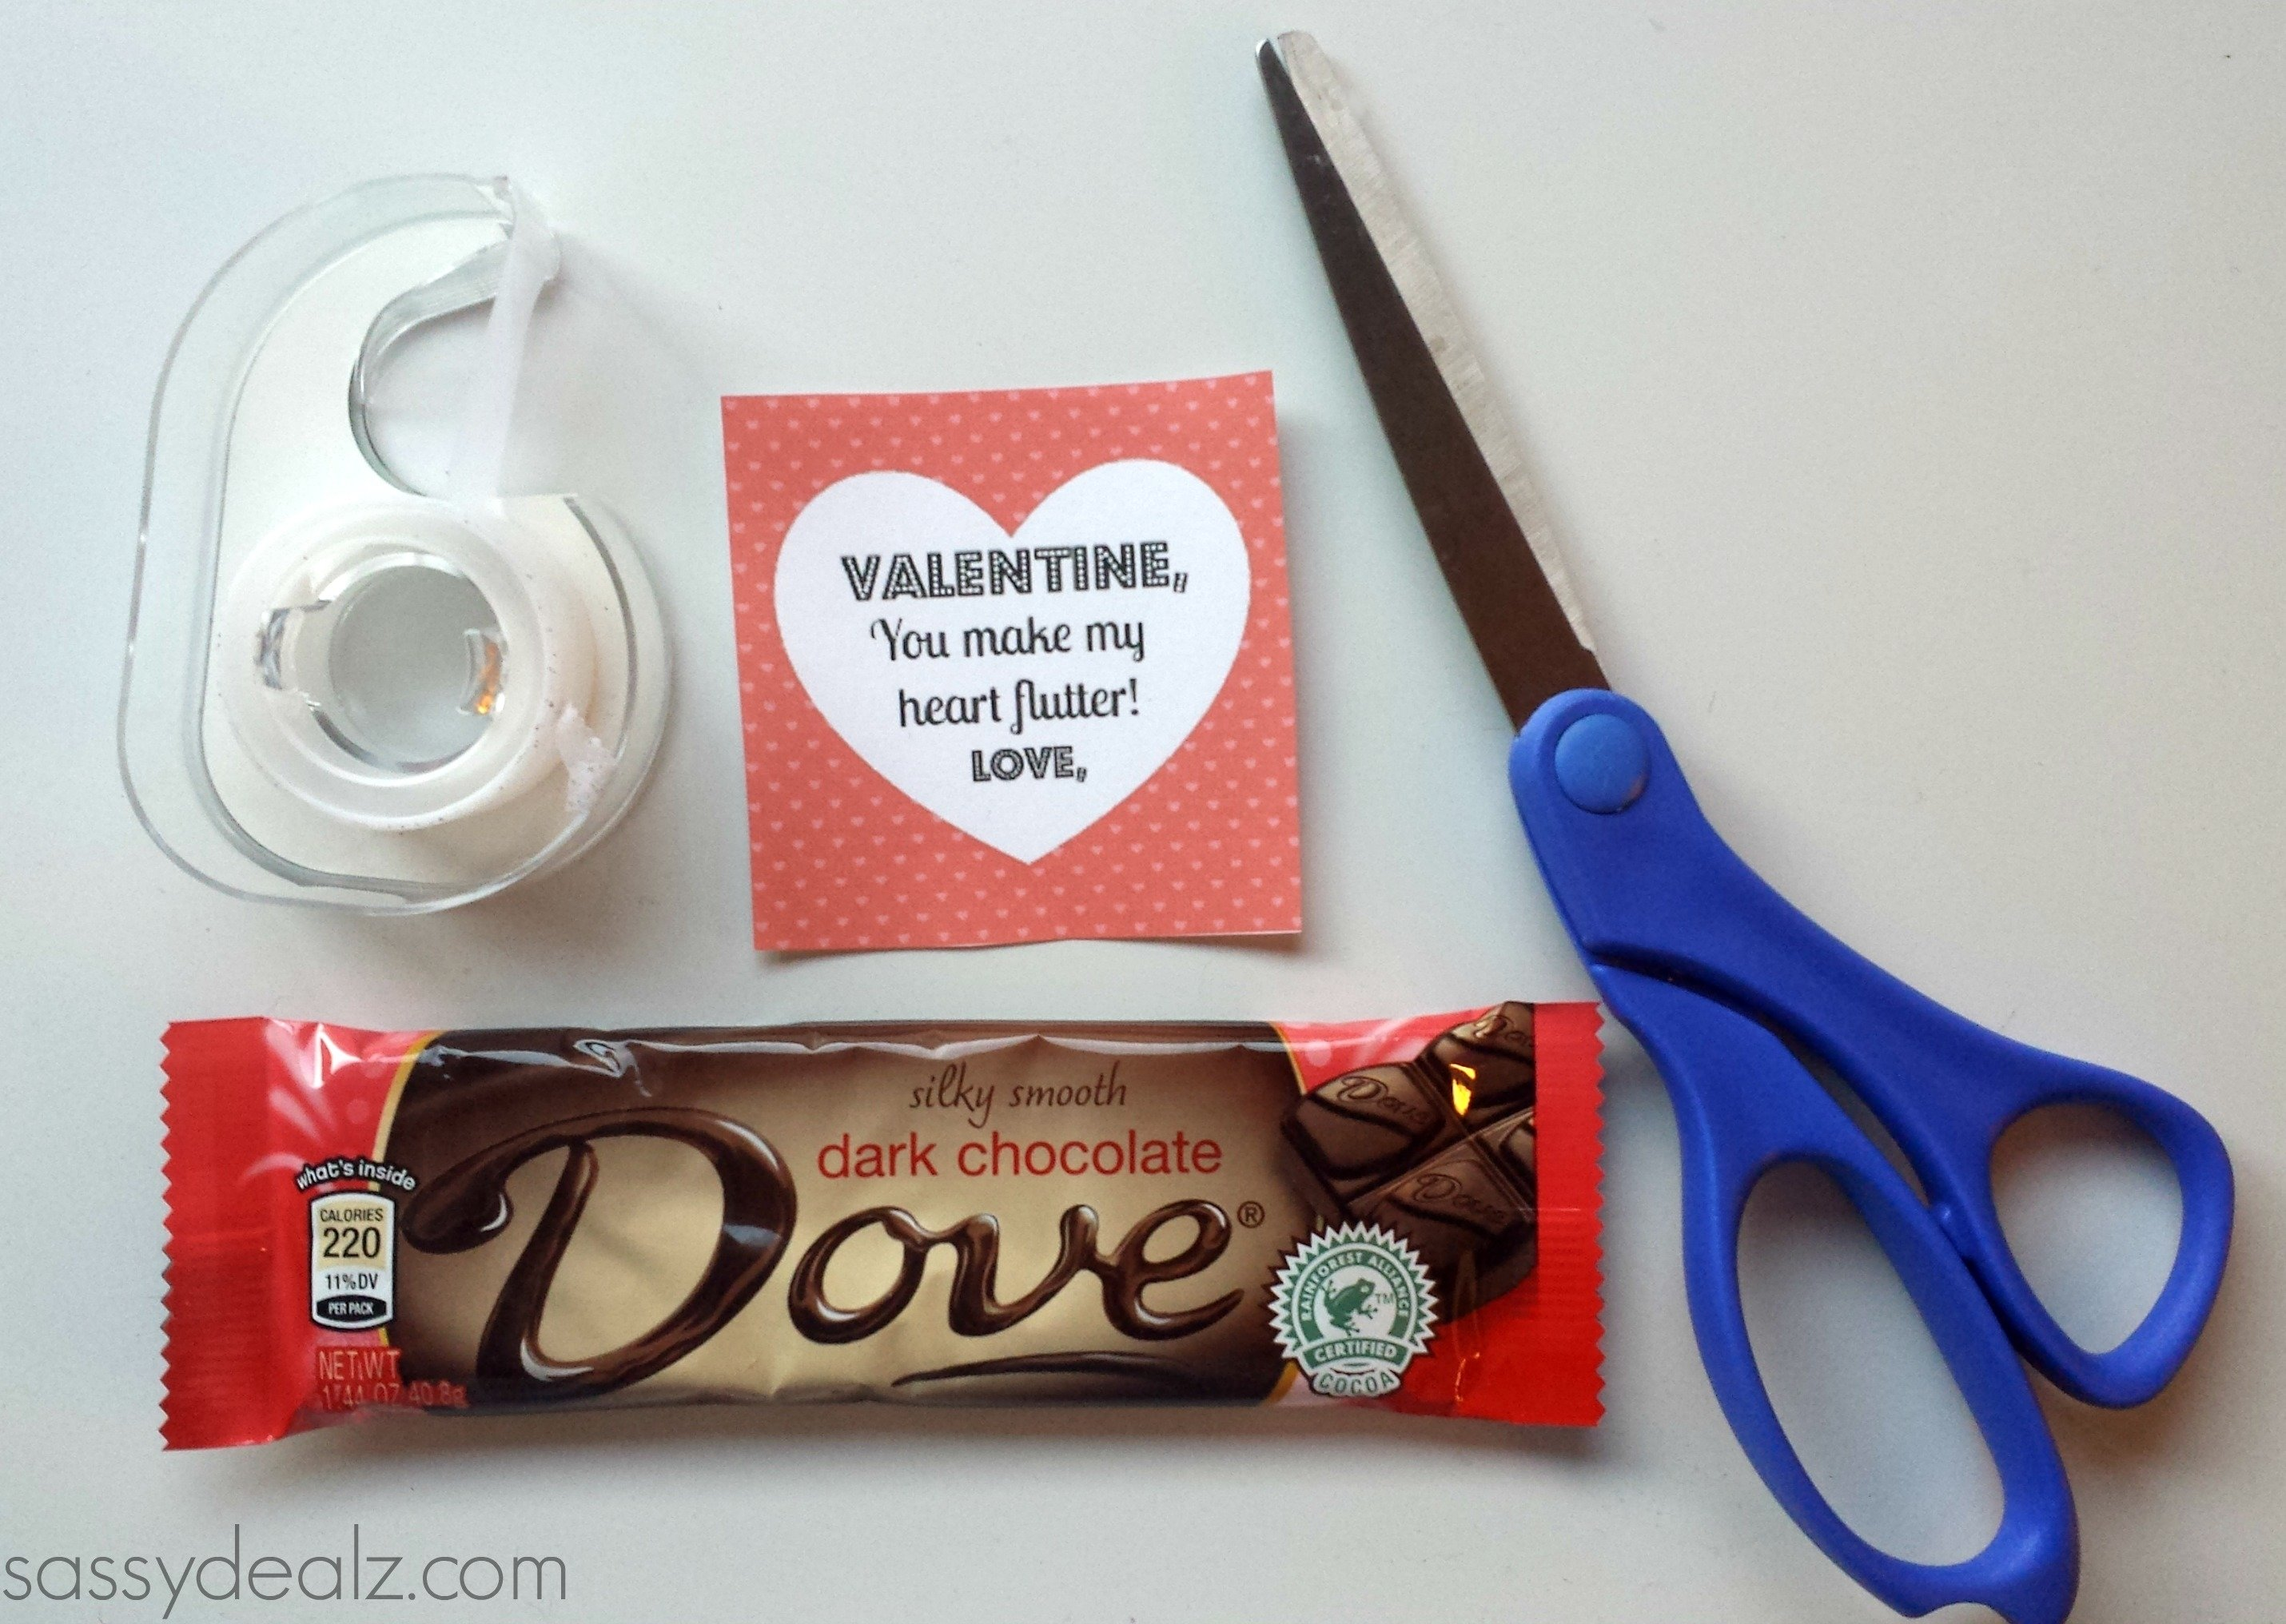 10 Nice Cute Ideas For Valentines Day valentines day cute ideas startupcorner co